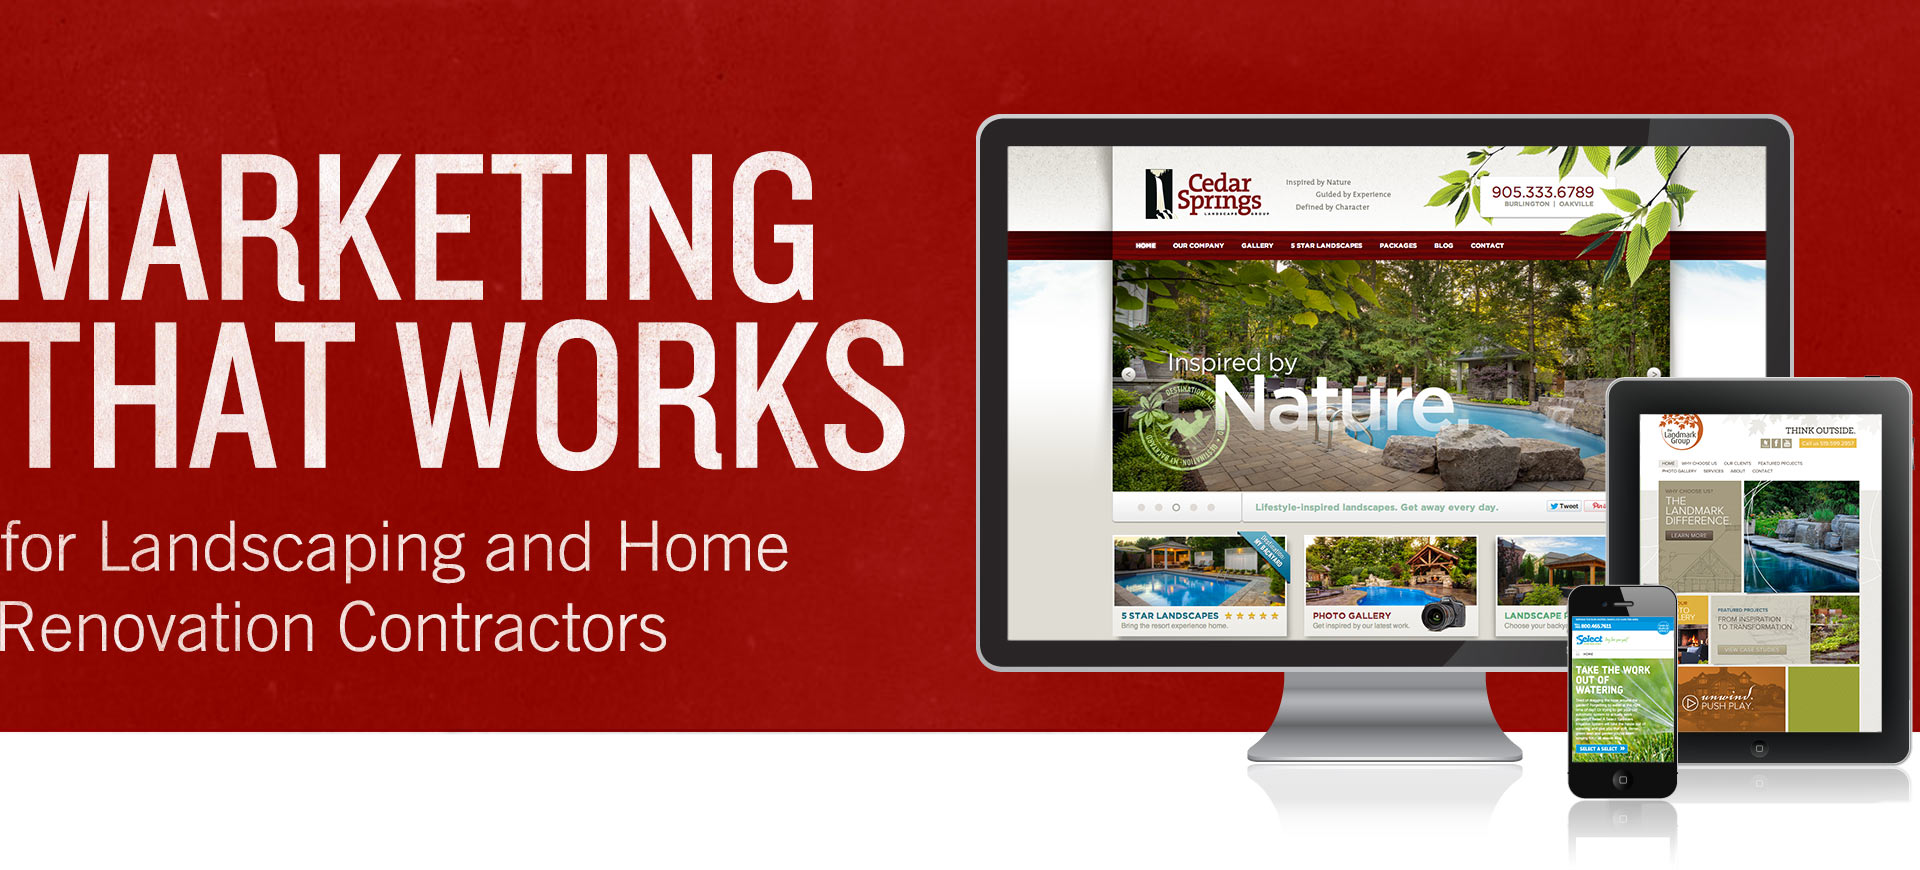 Marketing that works for Landscaping and Home Contractors.